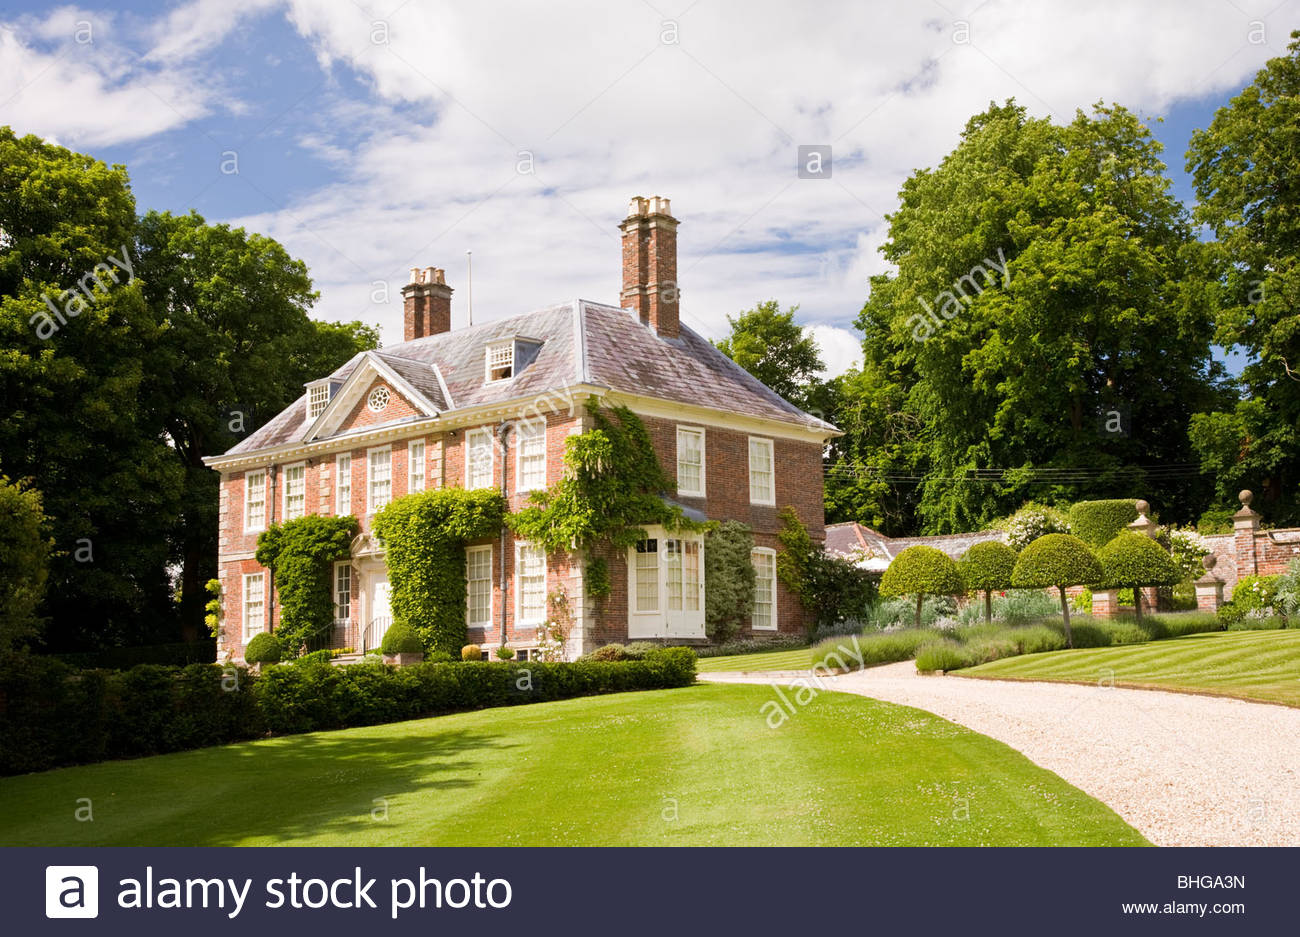 An English Queen Anne Country House Or Manor Approached By